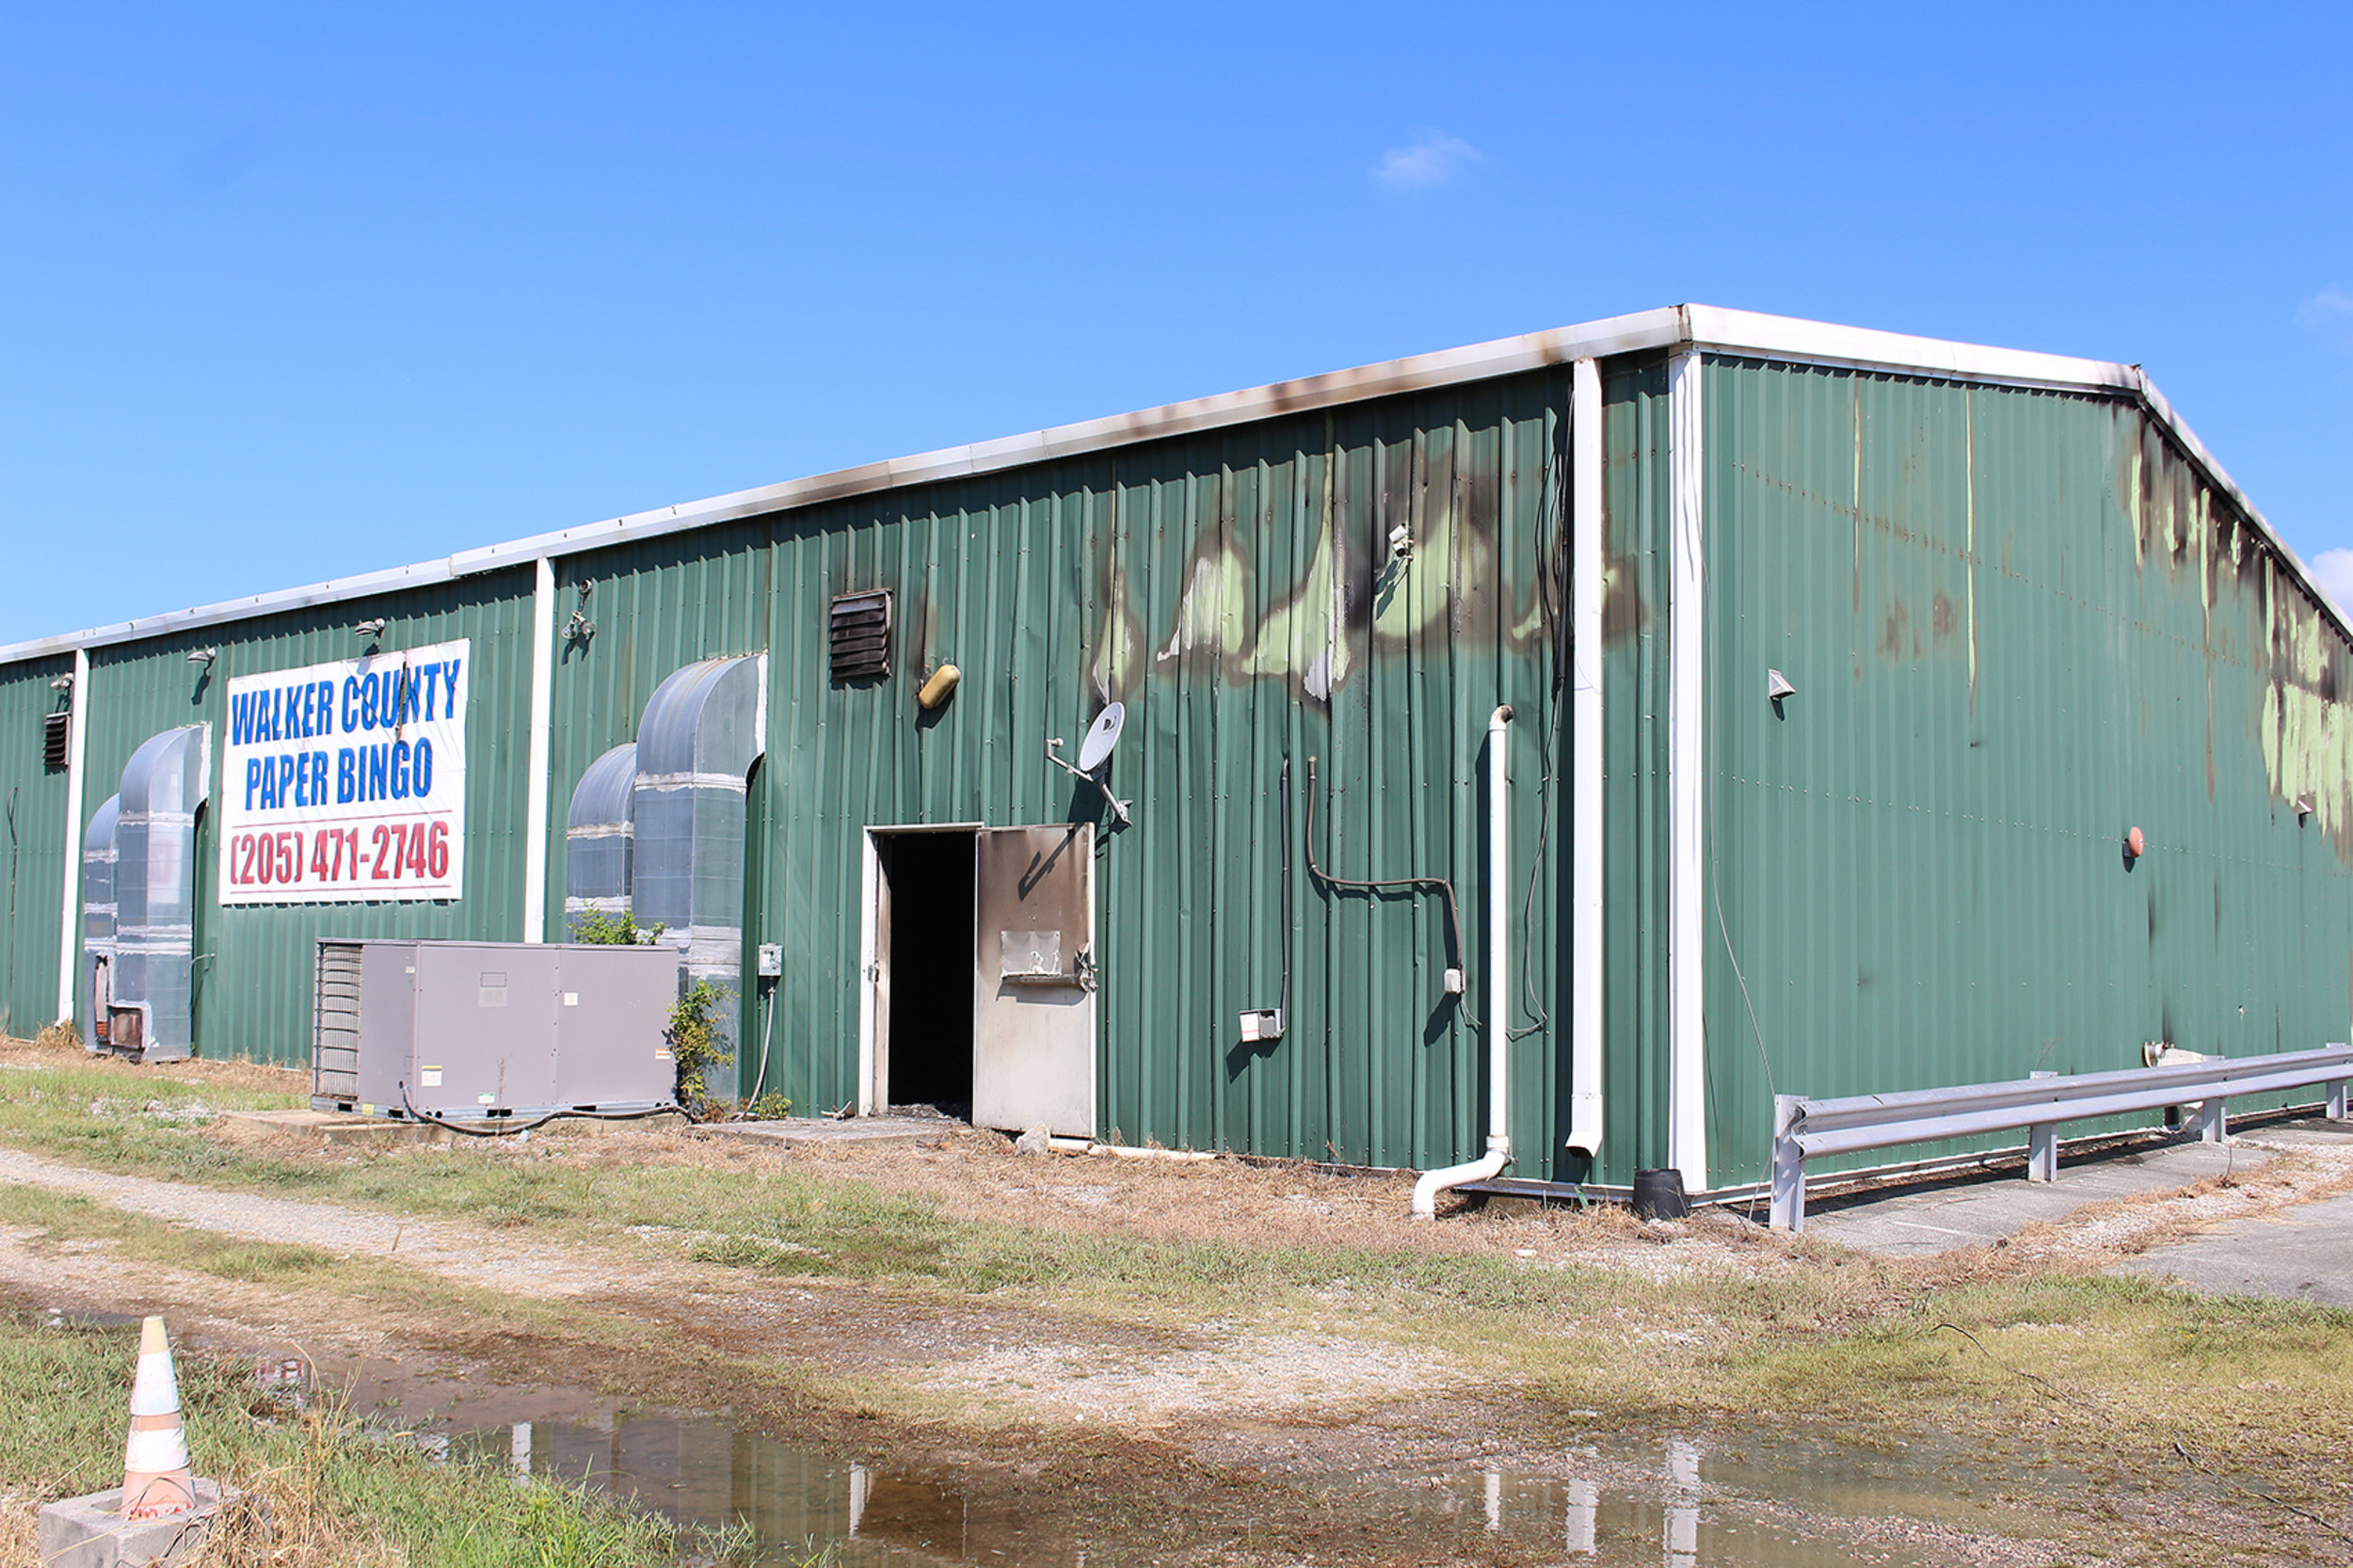 State fire marshals have ruled a fire that heavily damaged the Walker County Paper Bingo Hall in Jasper was arson.  Daily Mountain Eagle - Elane Jones